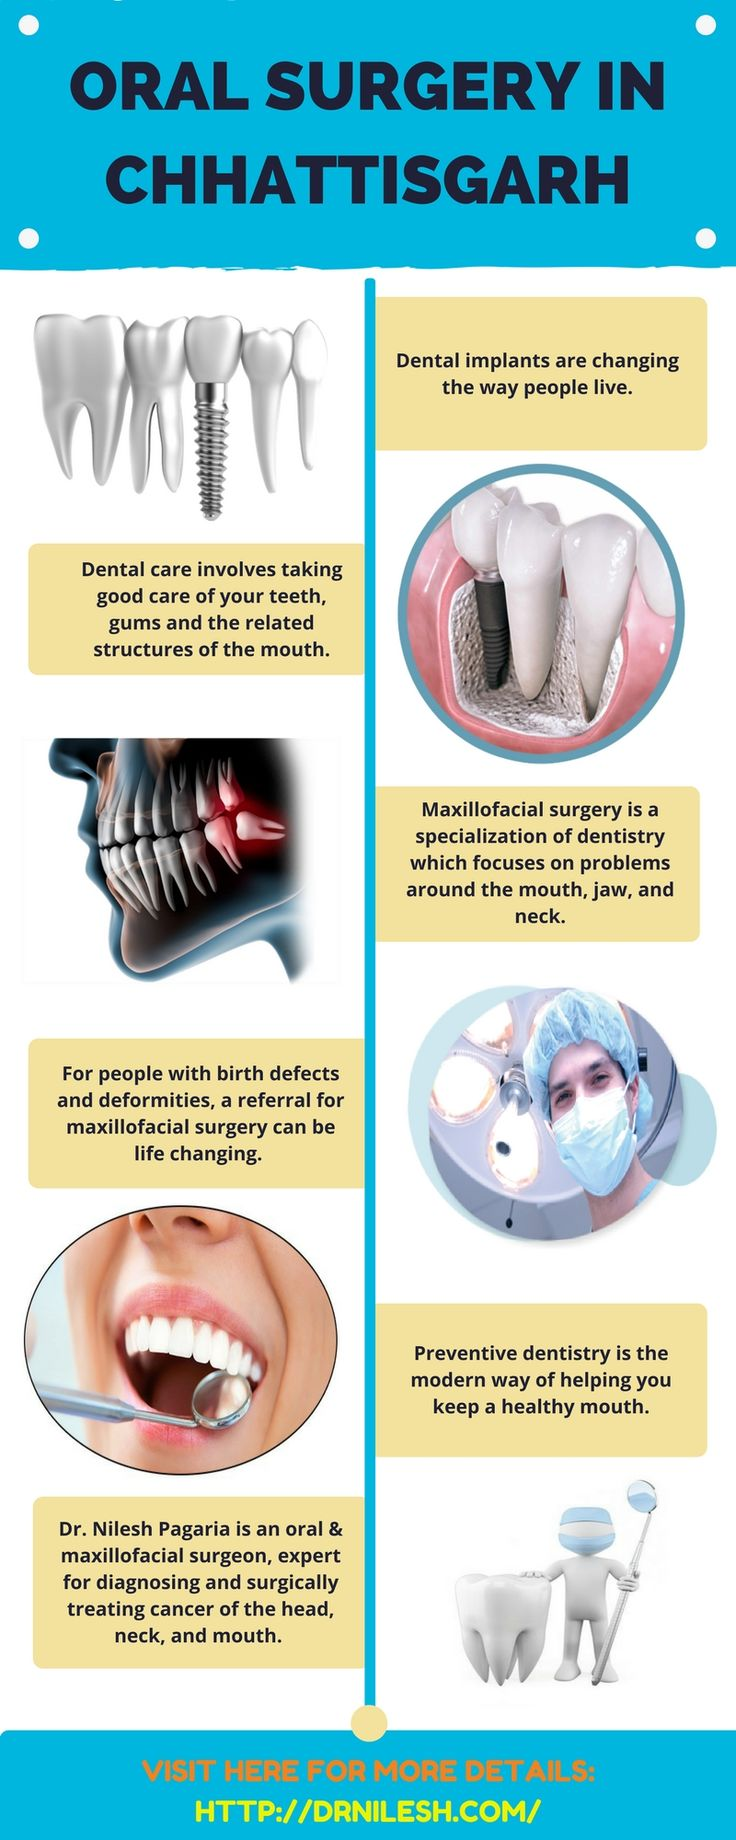 Have a jaw, oral, or facial cyst or tumor diagnosed, removed and reconstructed here at Dr. Nilesh Pagaria's clinic (Oral & Maxillofacial Surgeon) to get the best treatment and care.